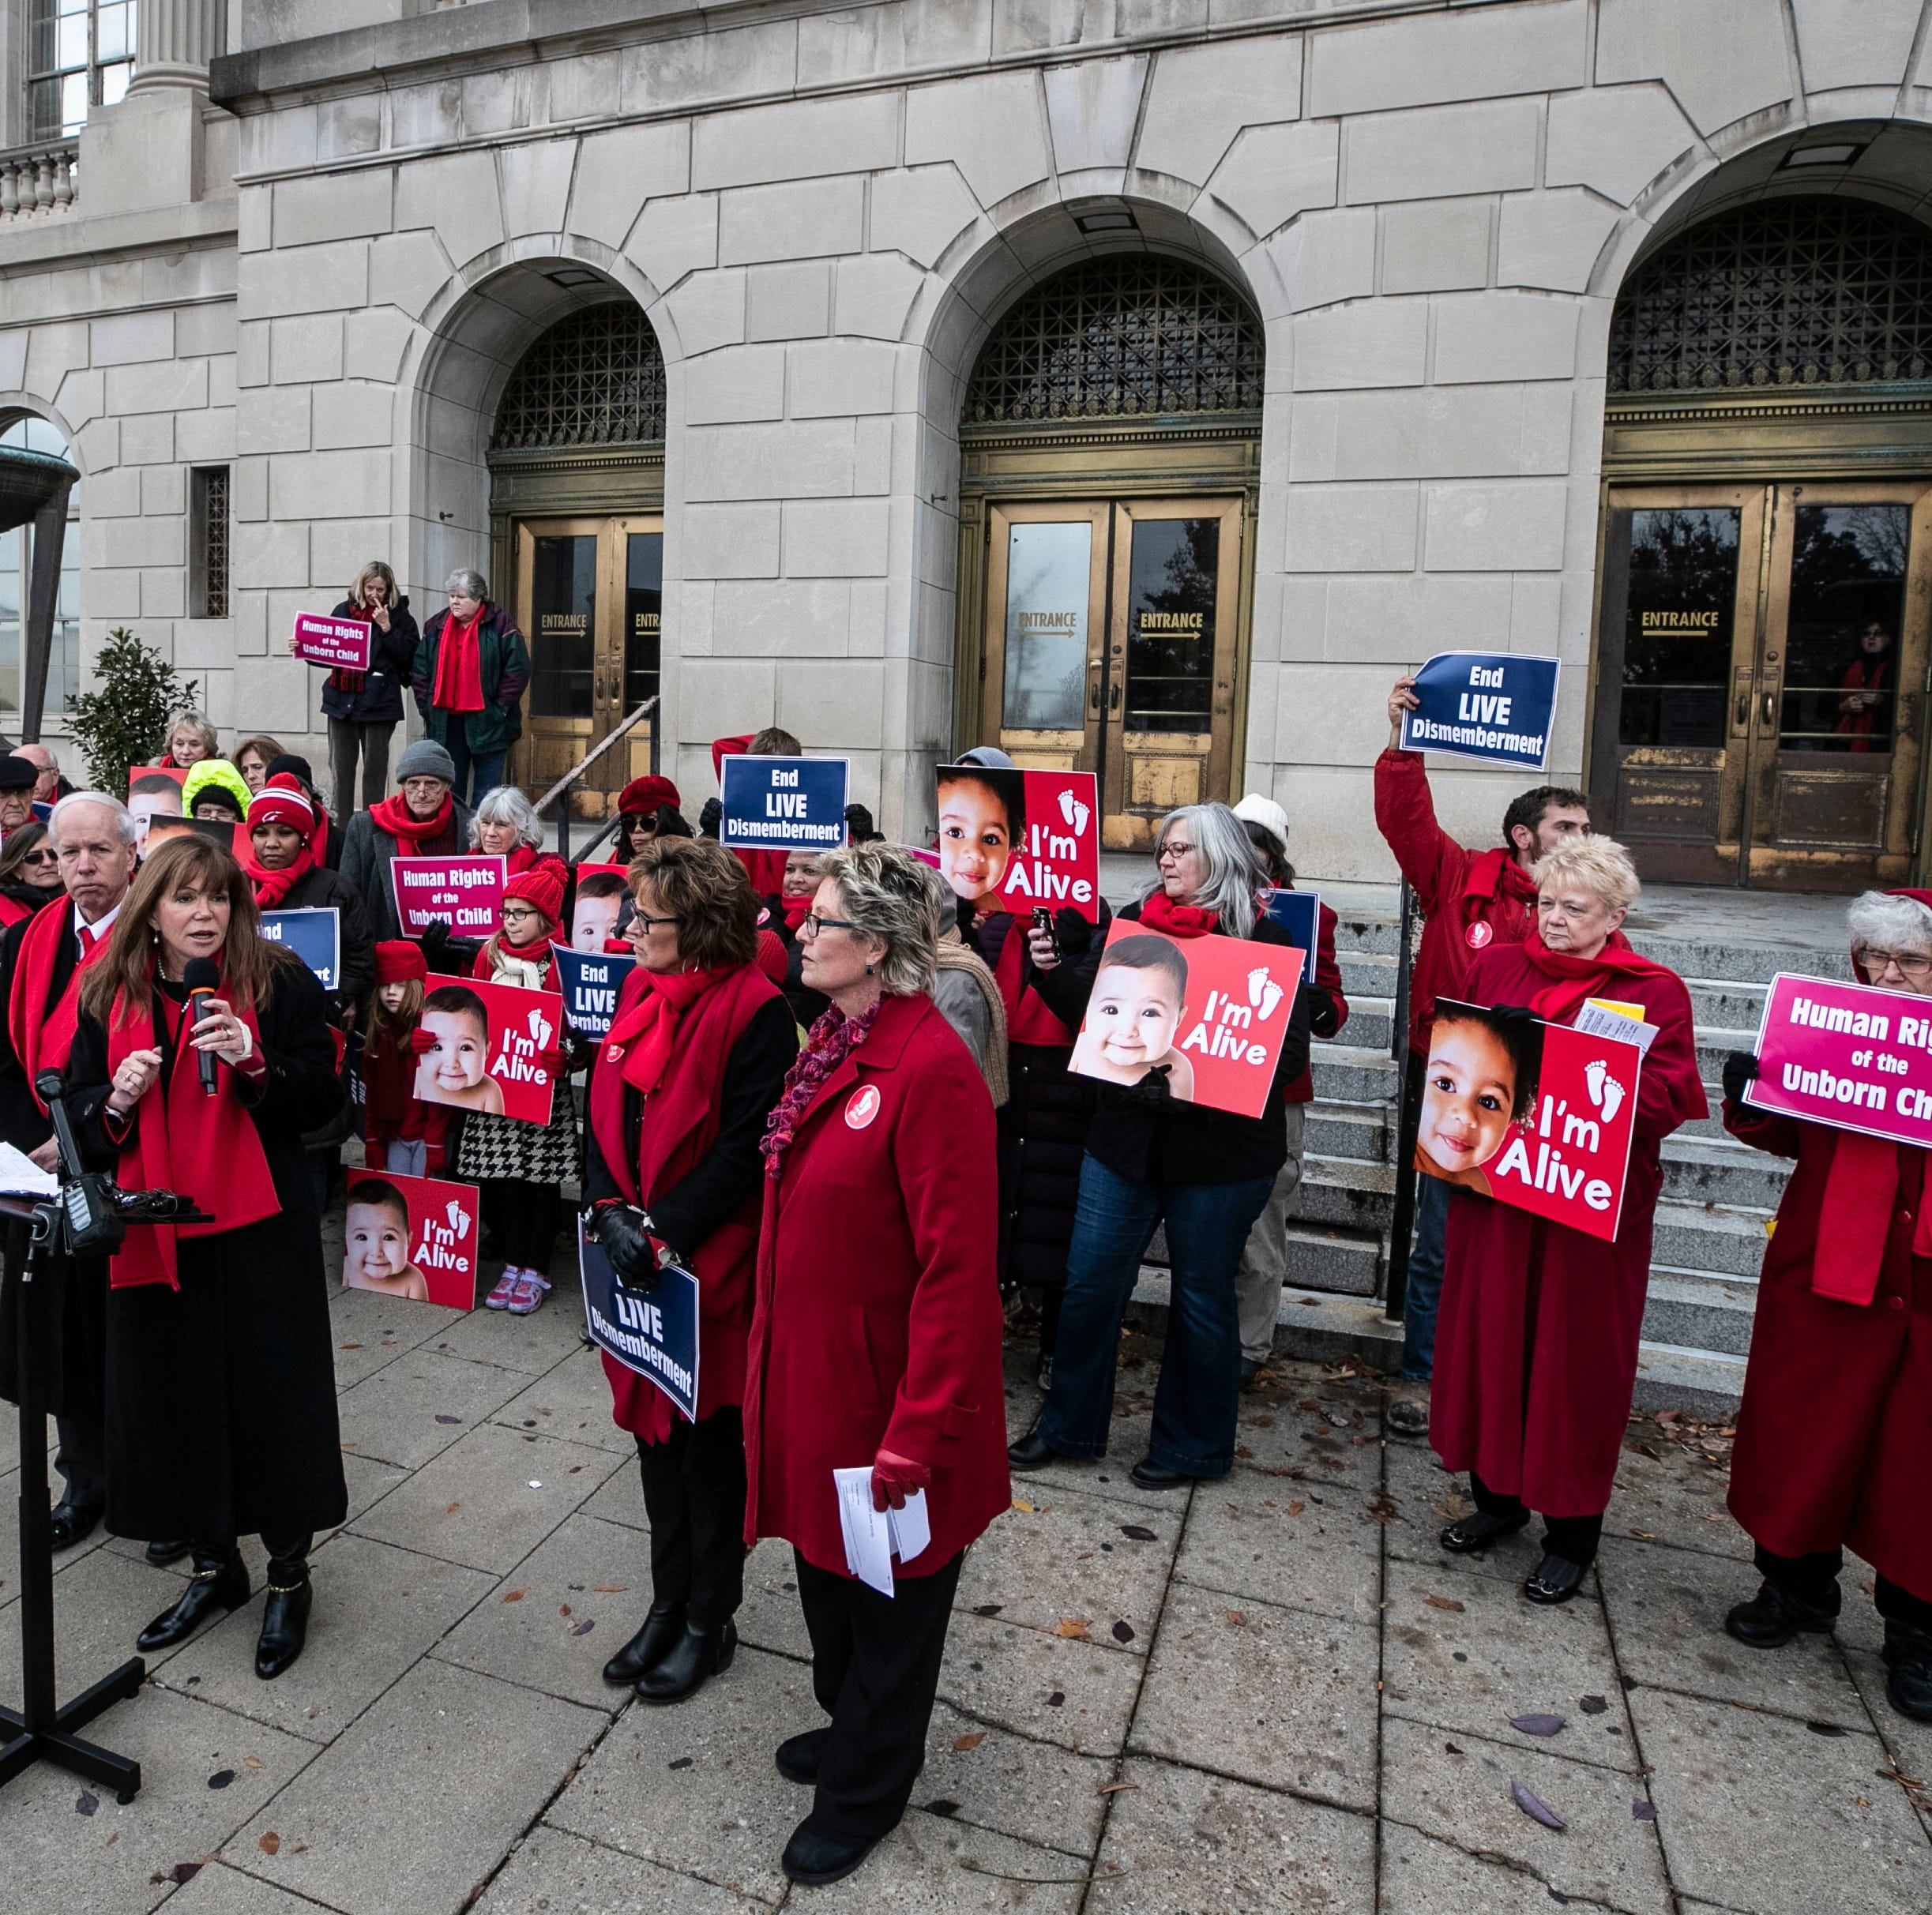 Kentucky's only abortion clinic resumes seeing patients as 'fetal heartbeat' law blocked